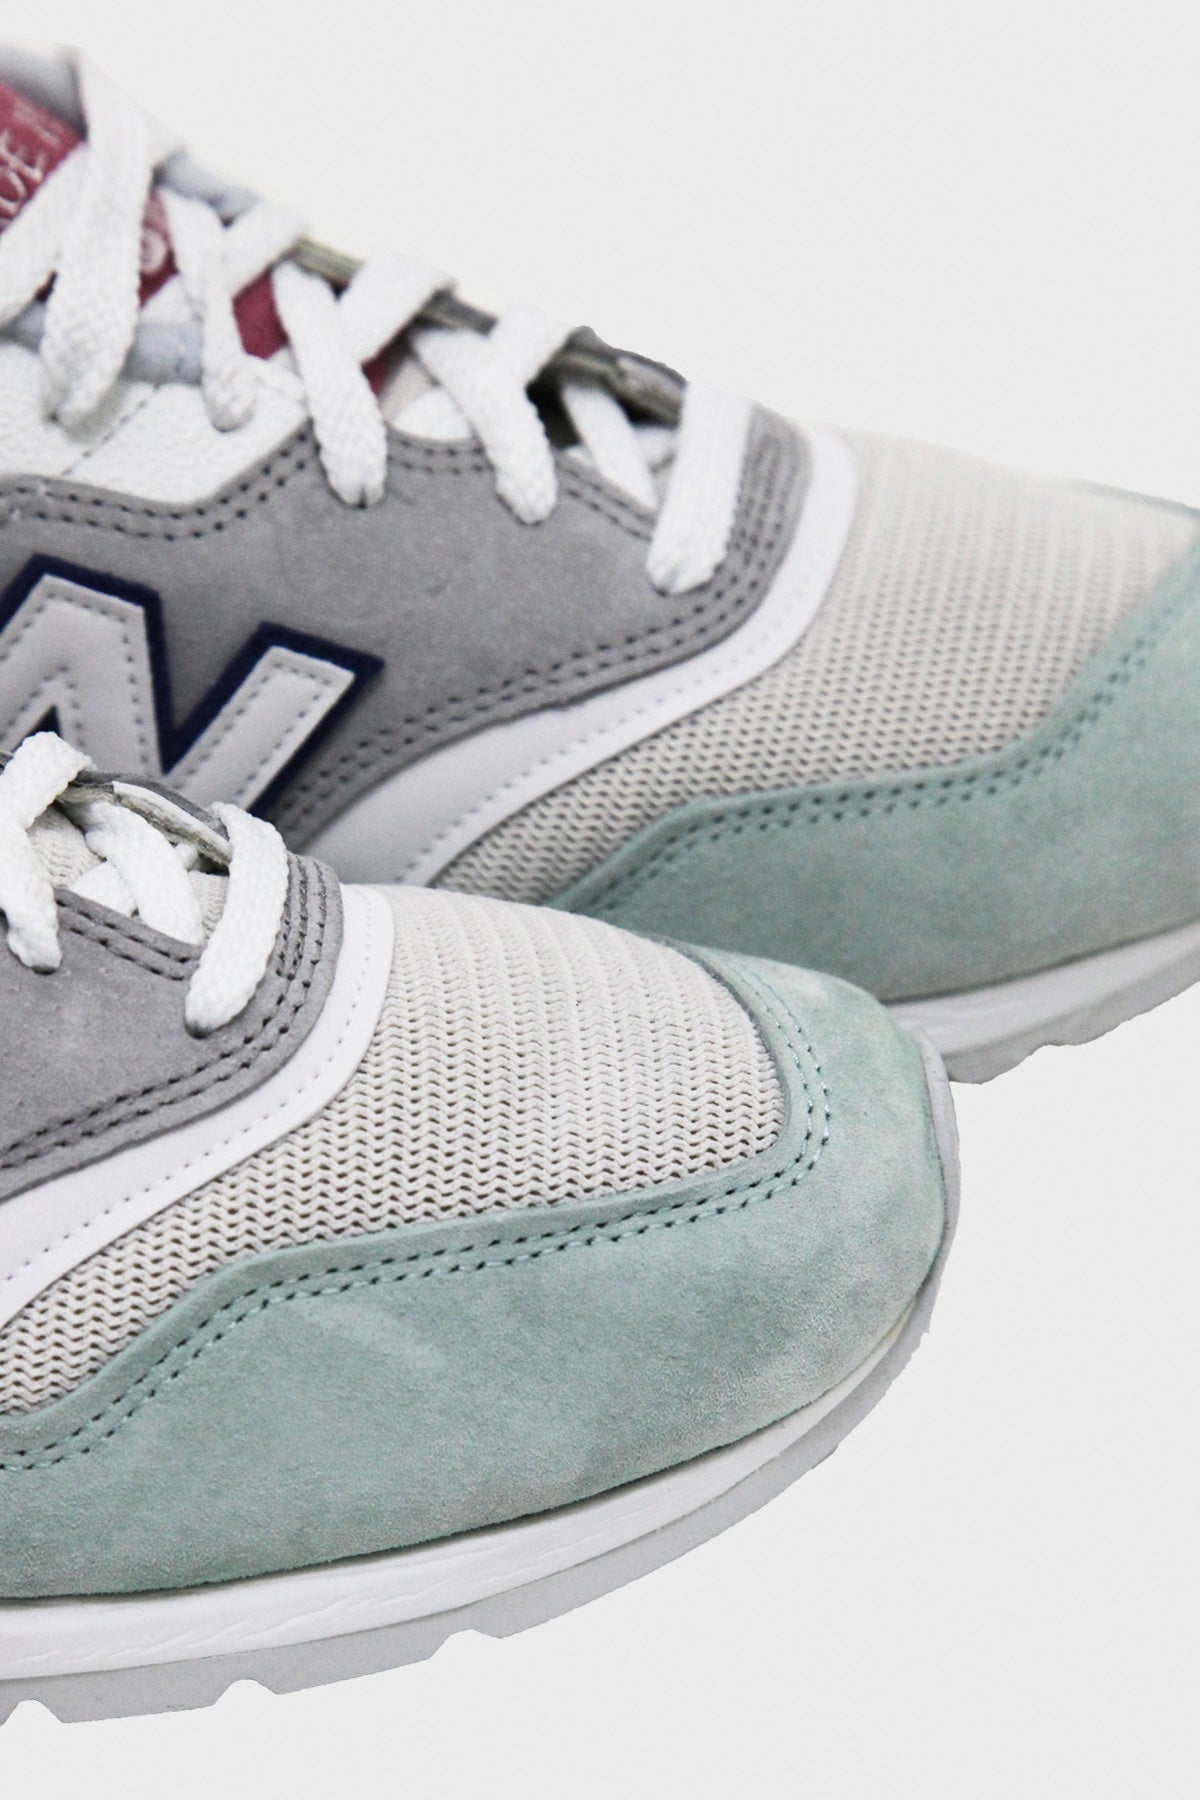 New Balance - M997 - Grey/Green - Canoe Club